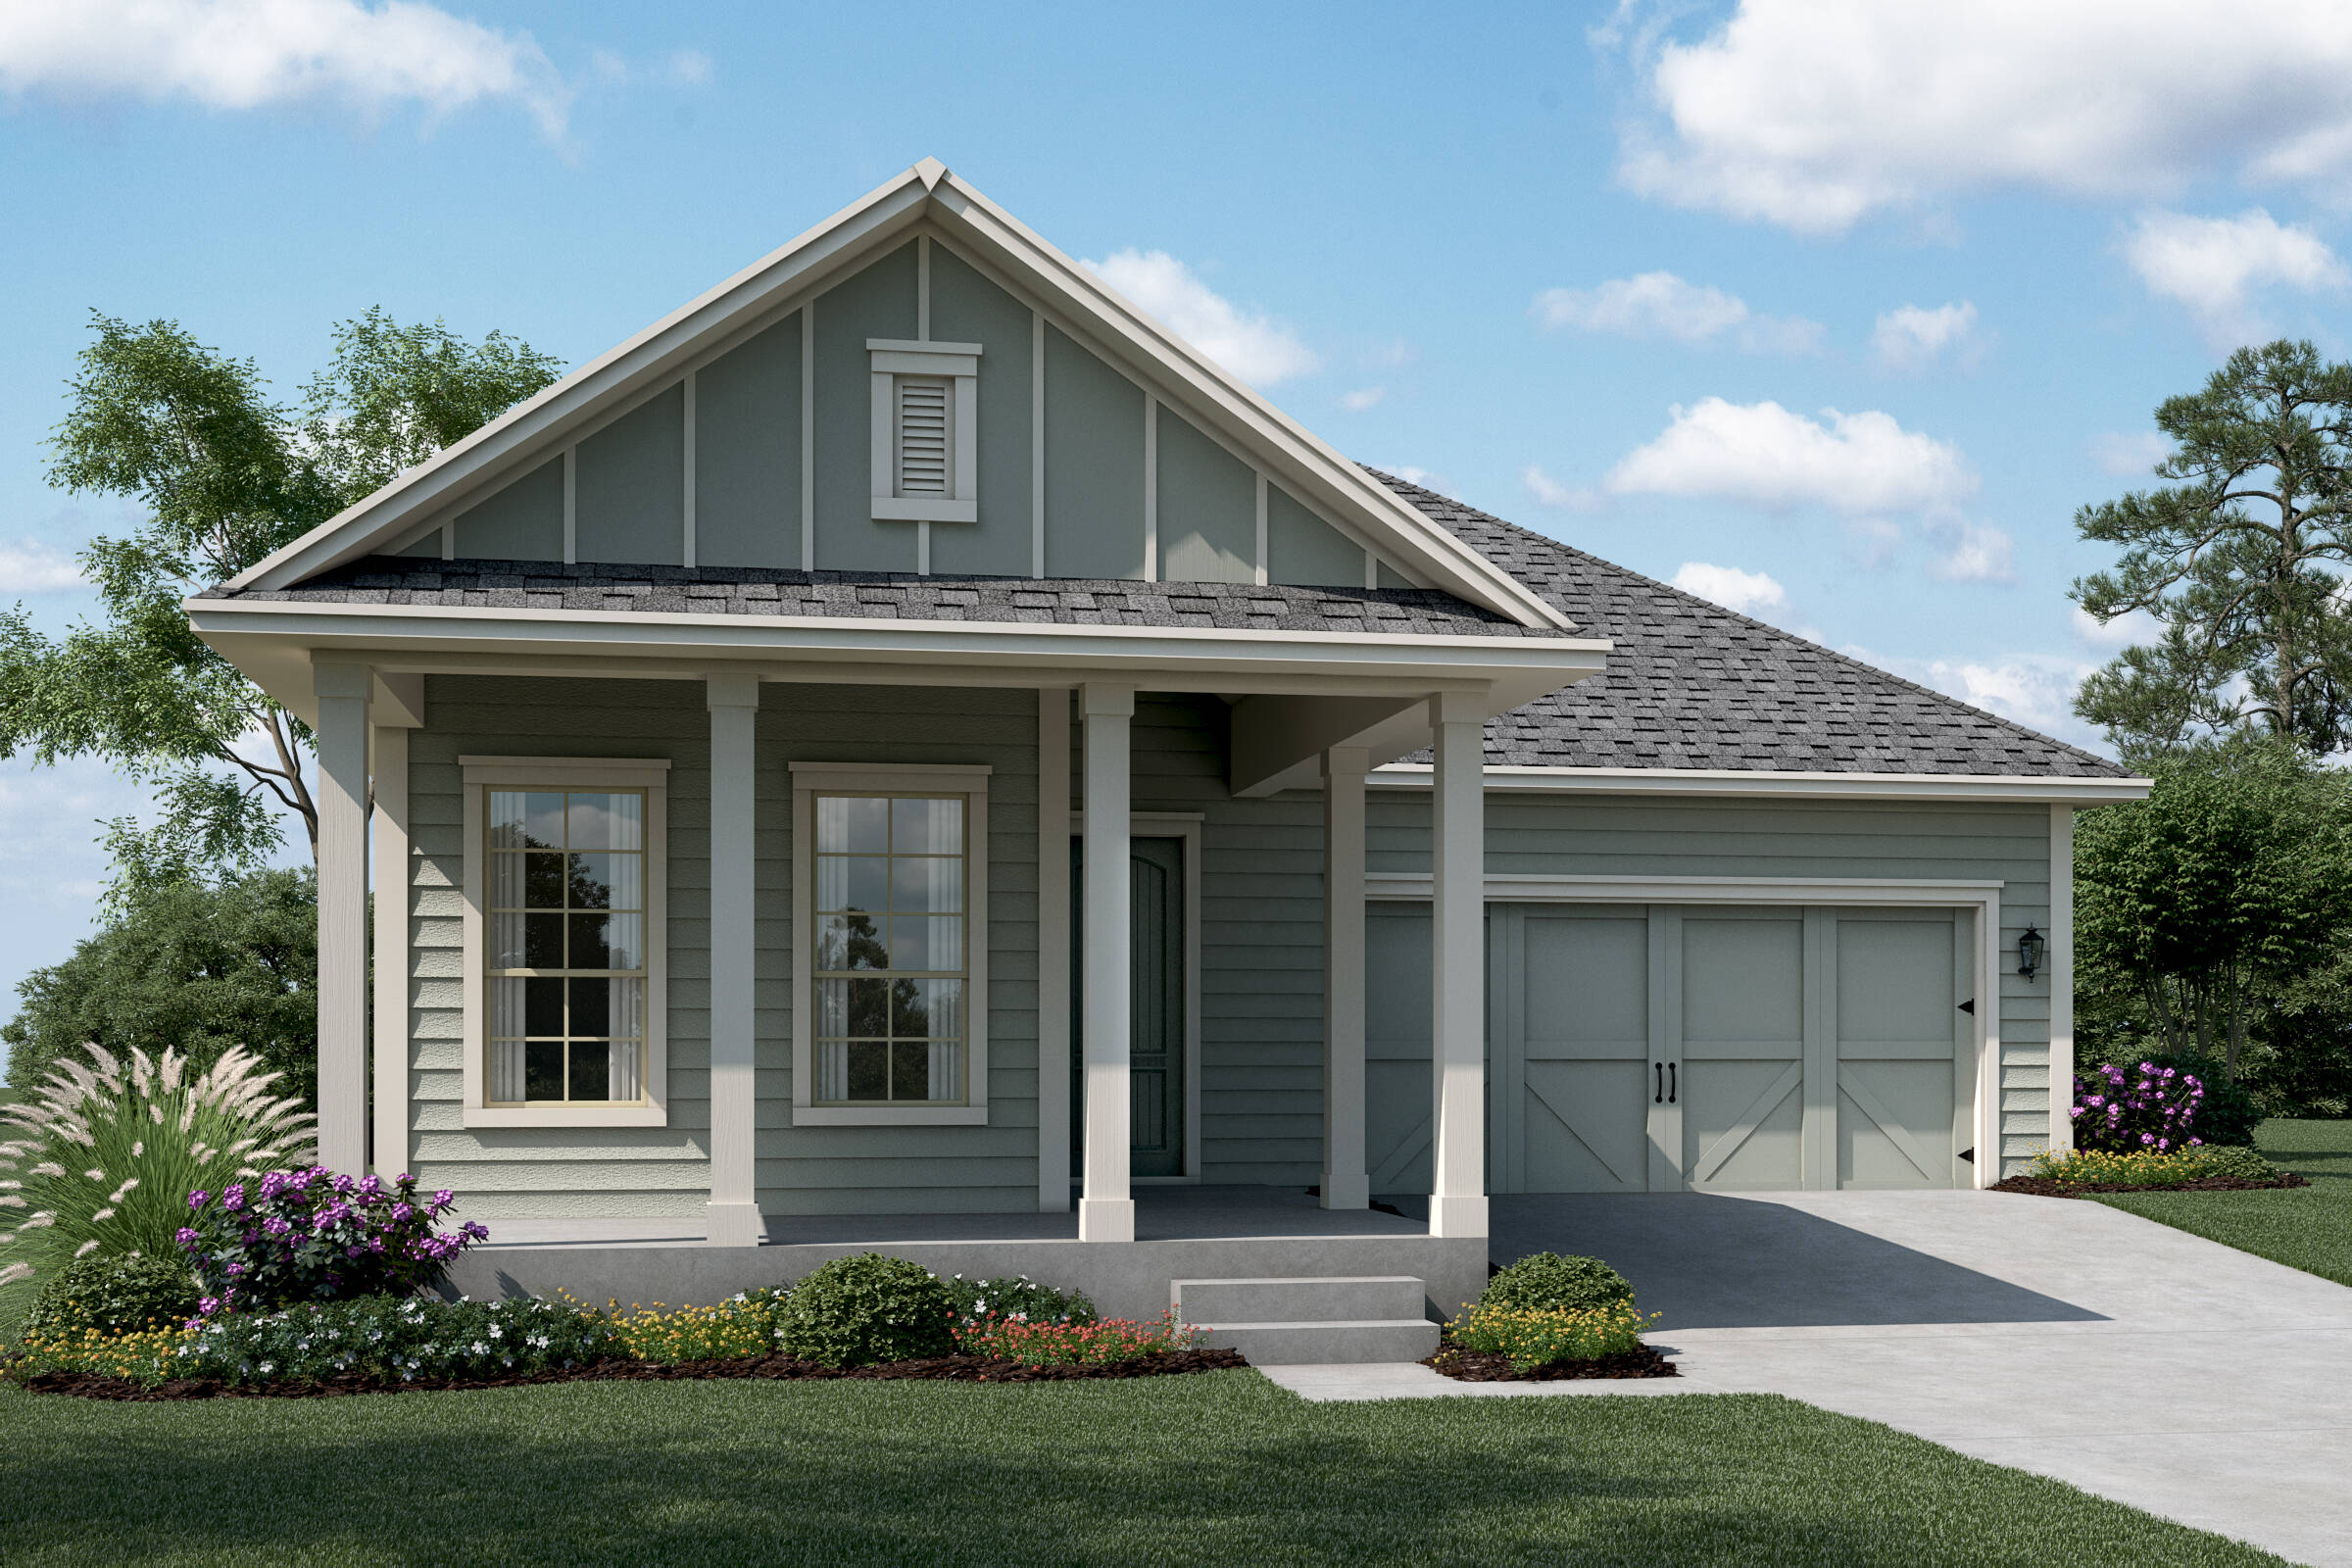 Malibu A Siding new homes dallas tx